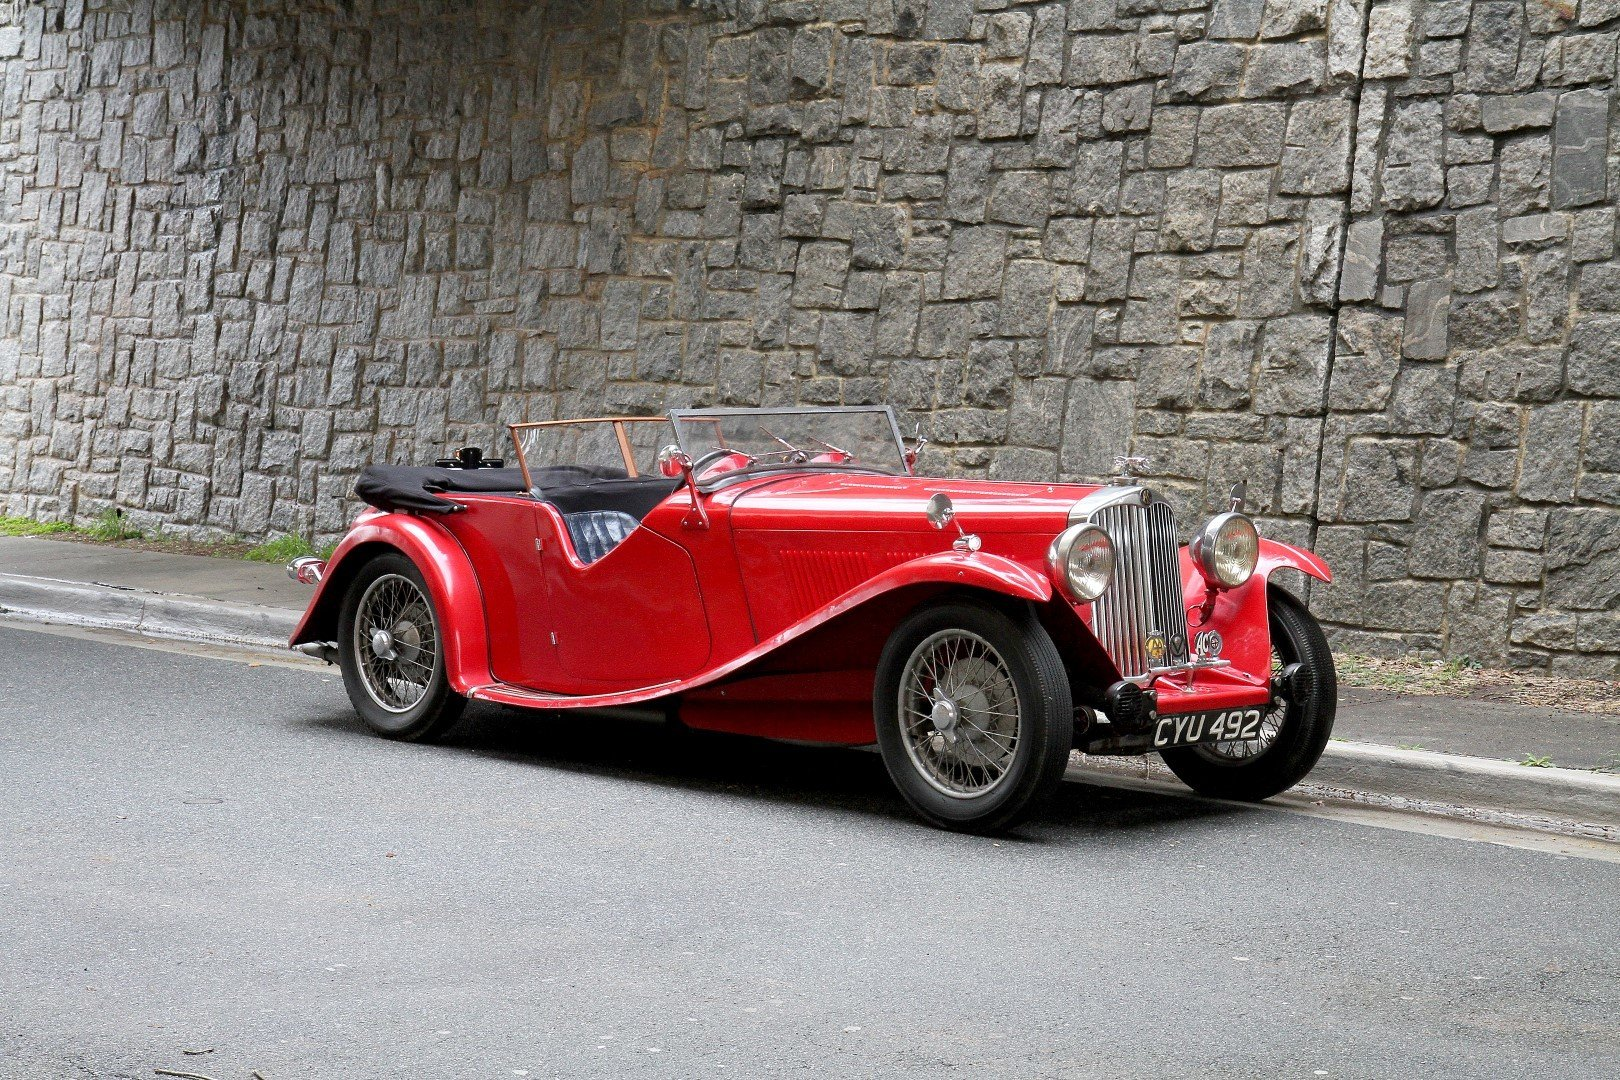 1936 ac 16 70 march tourer